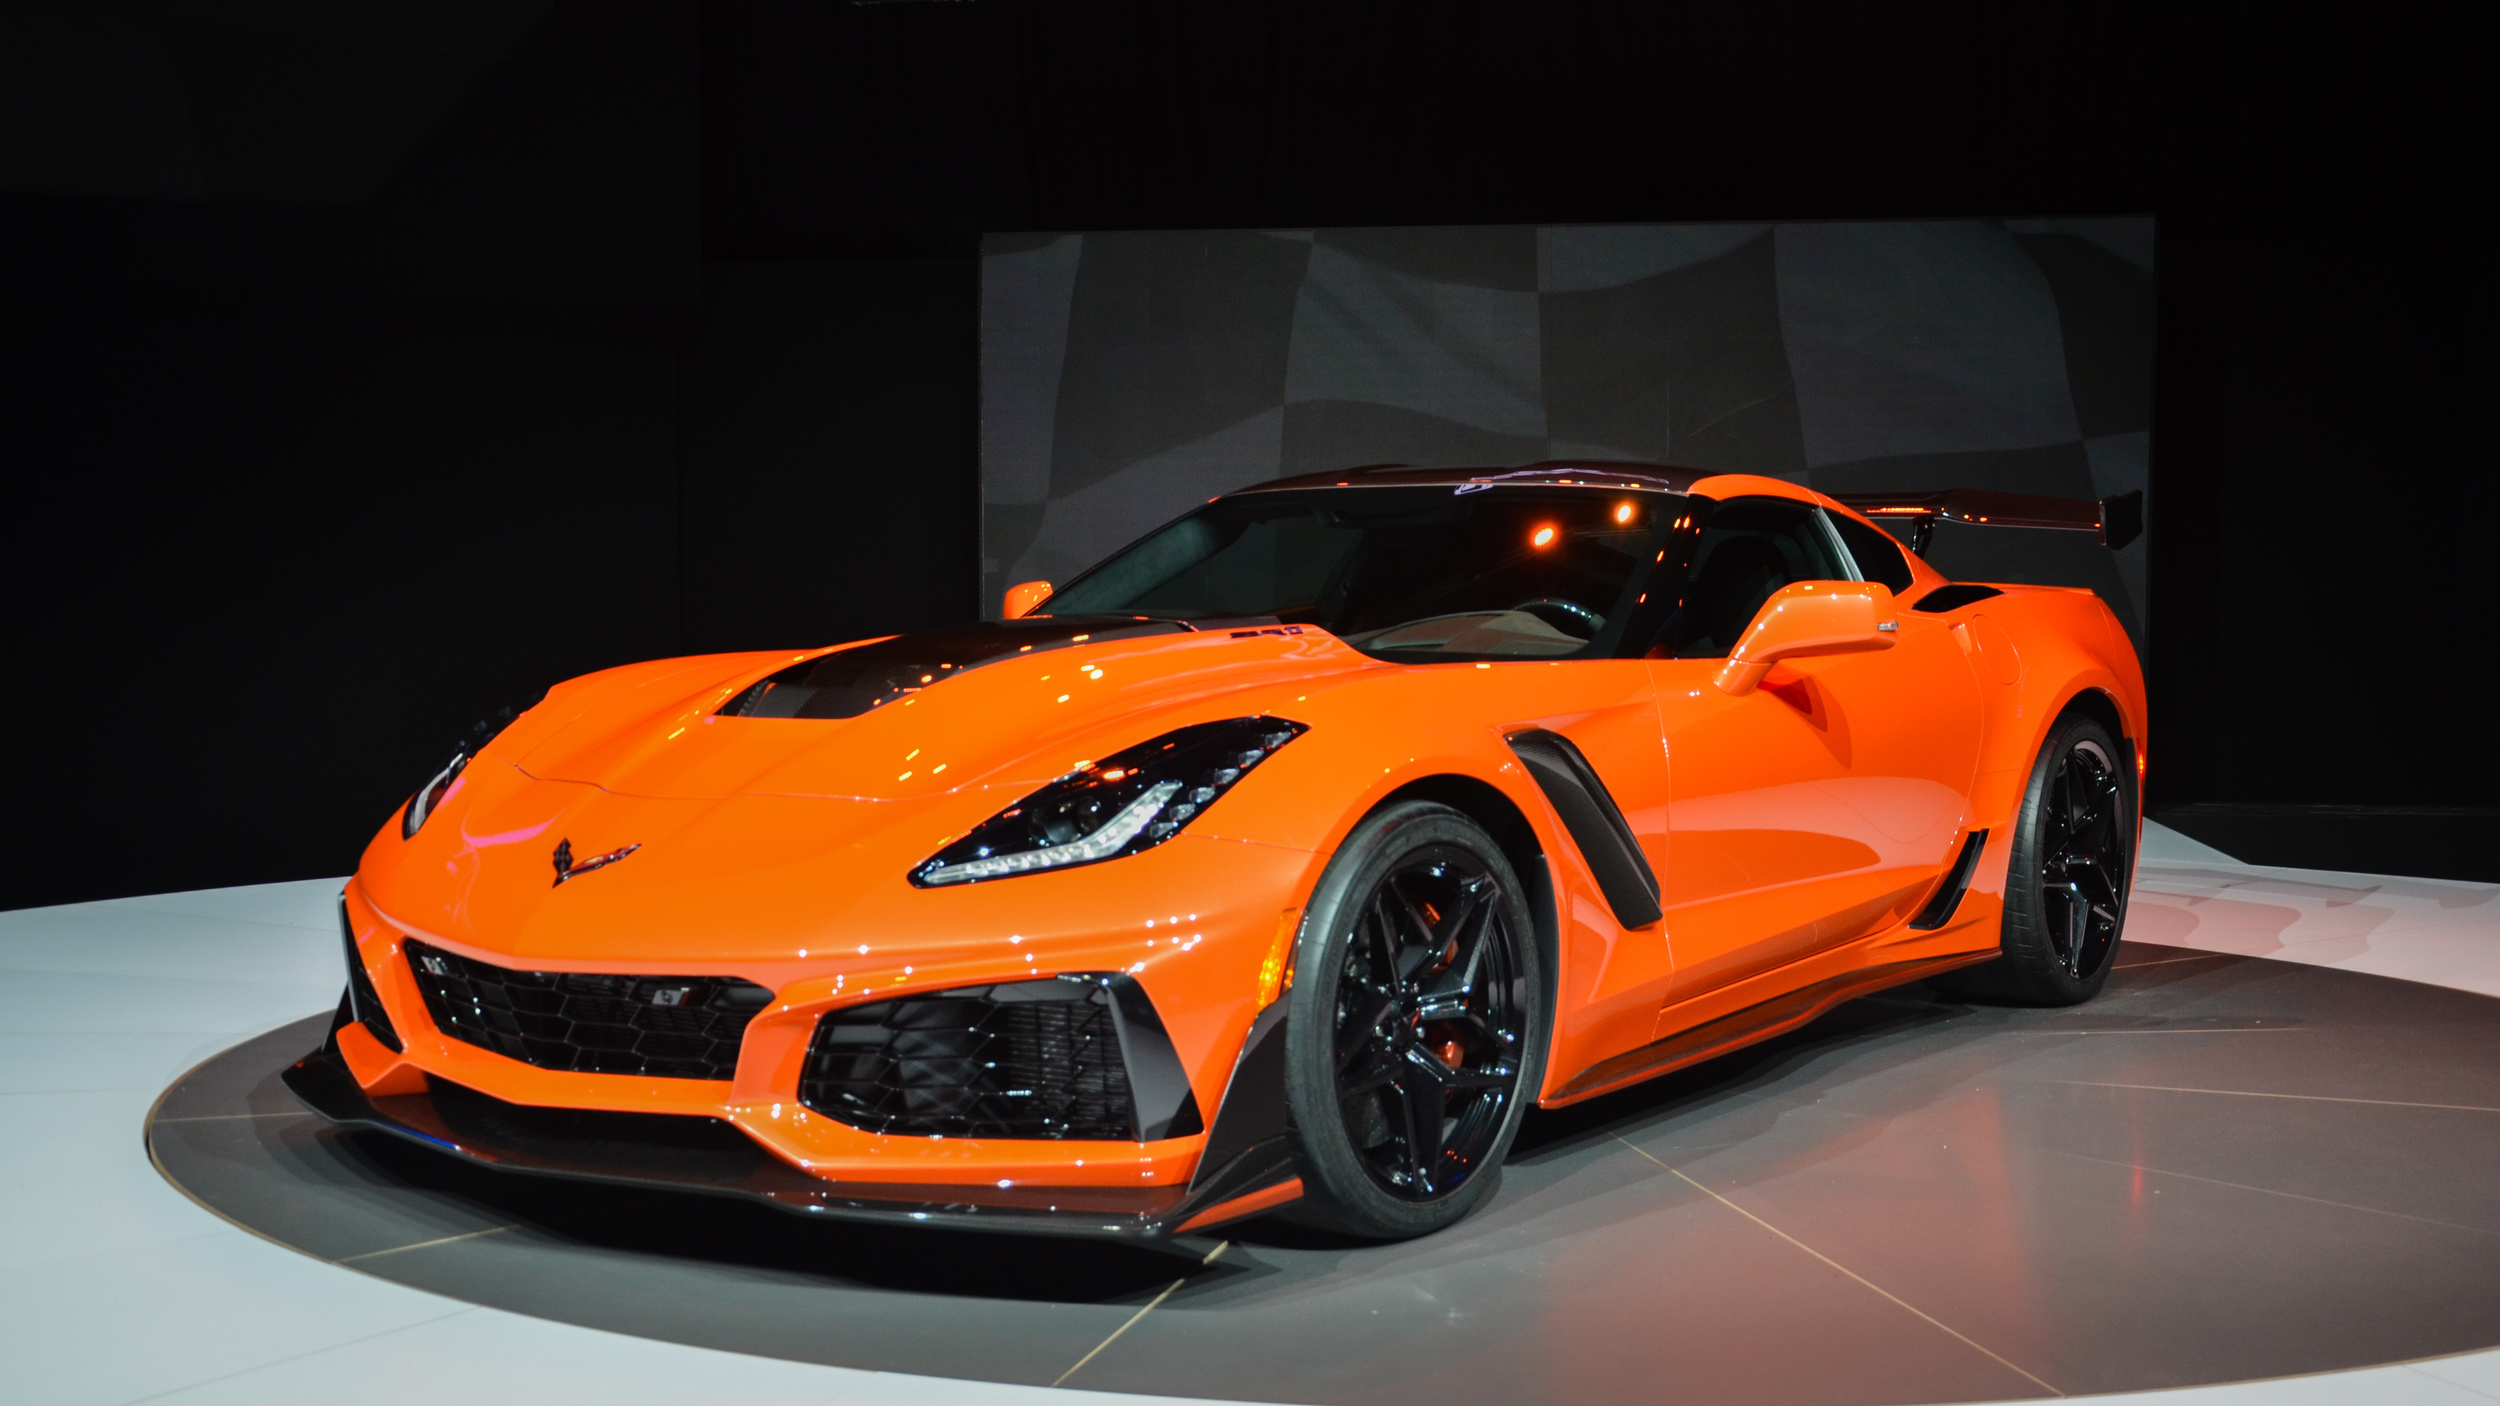 2019 Chevrolet Corvette Zr1 Meet The Judge Jury And The